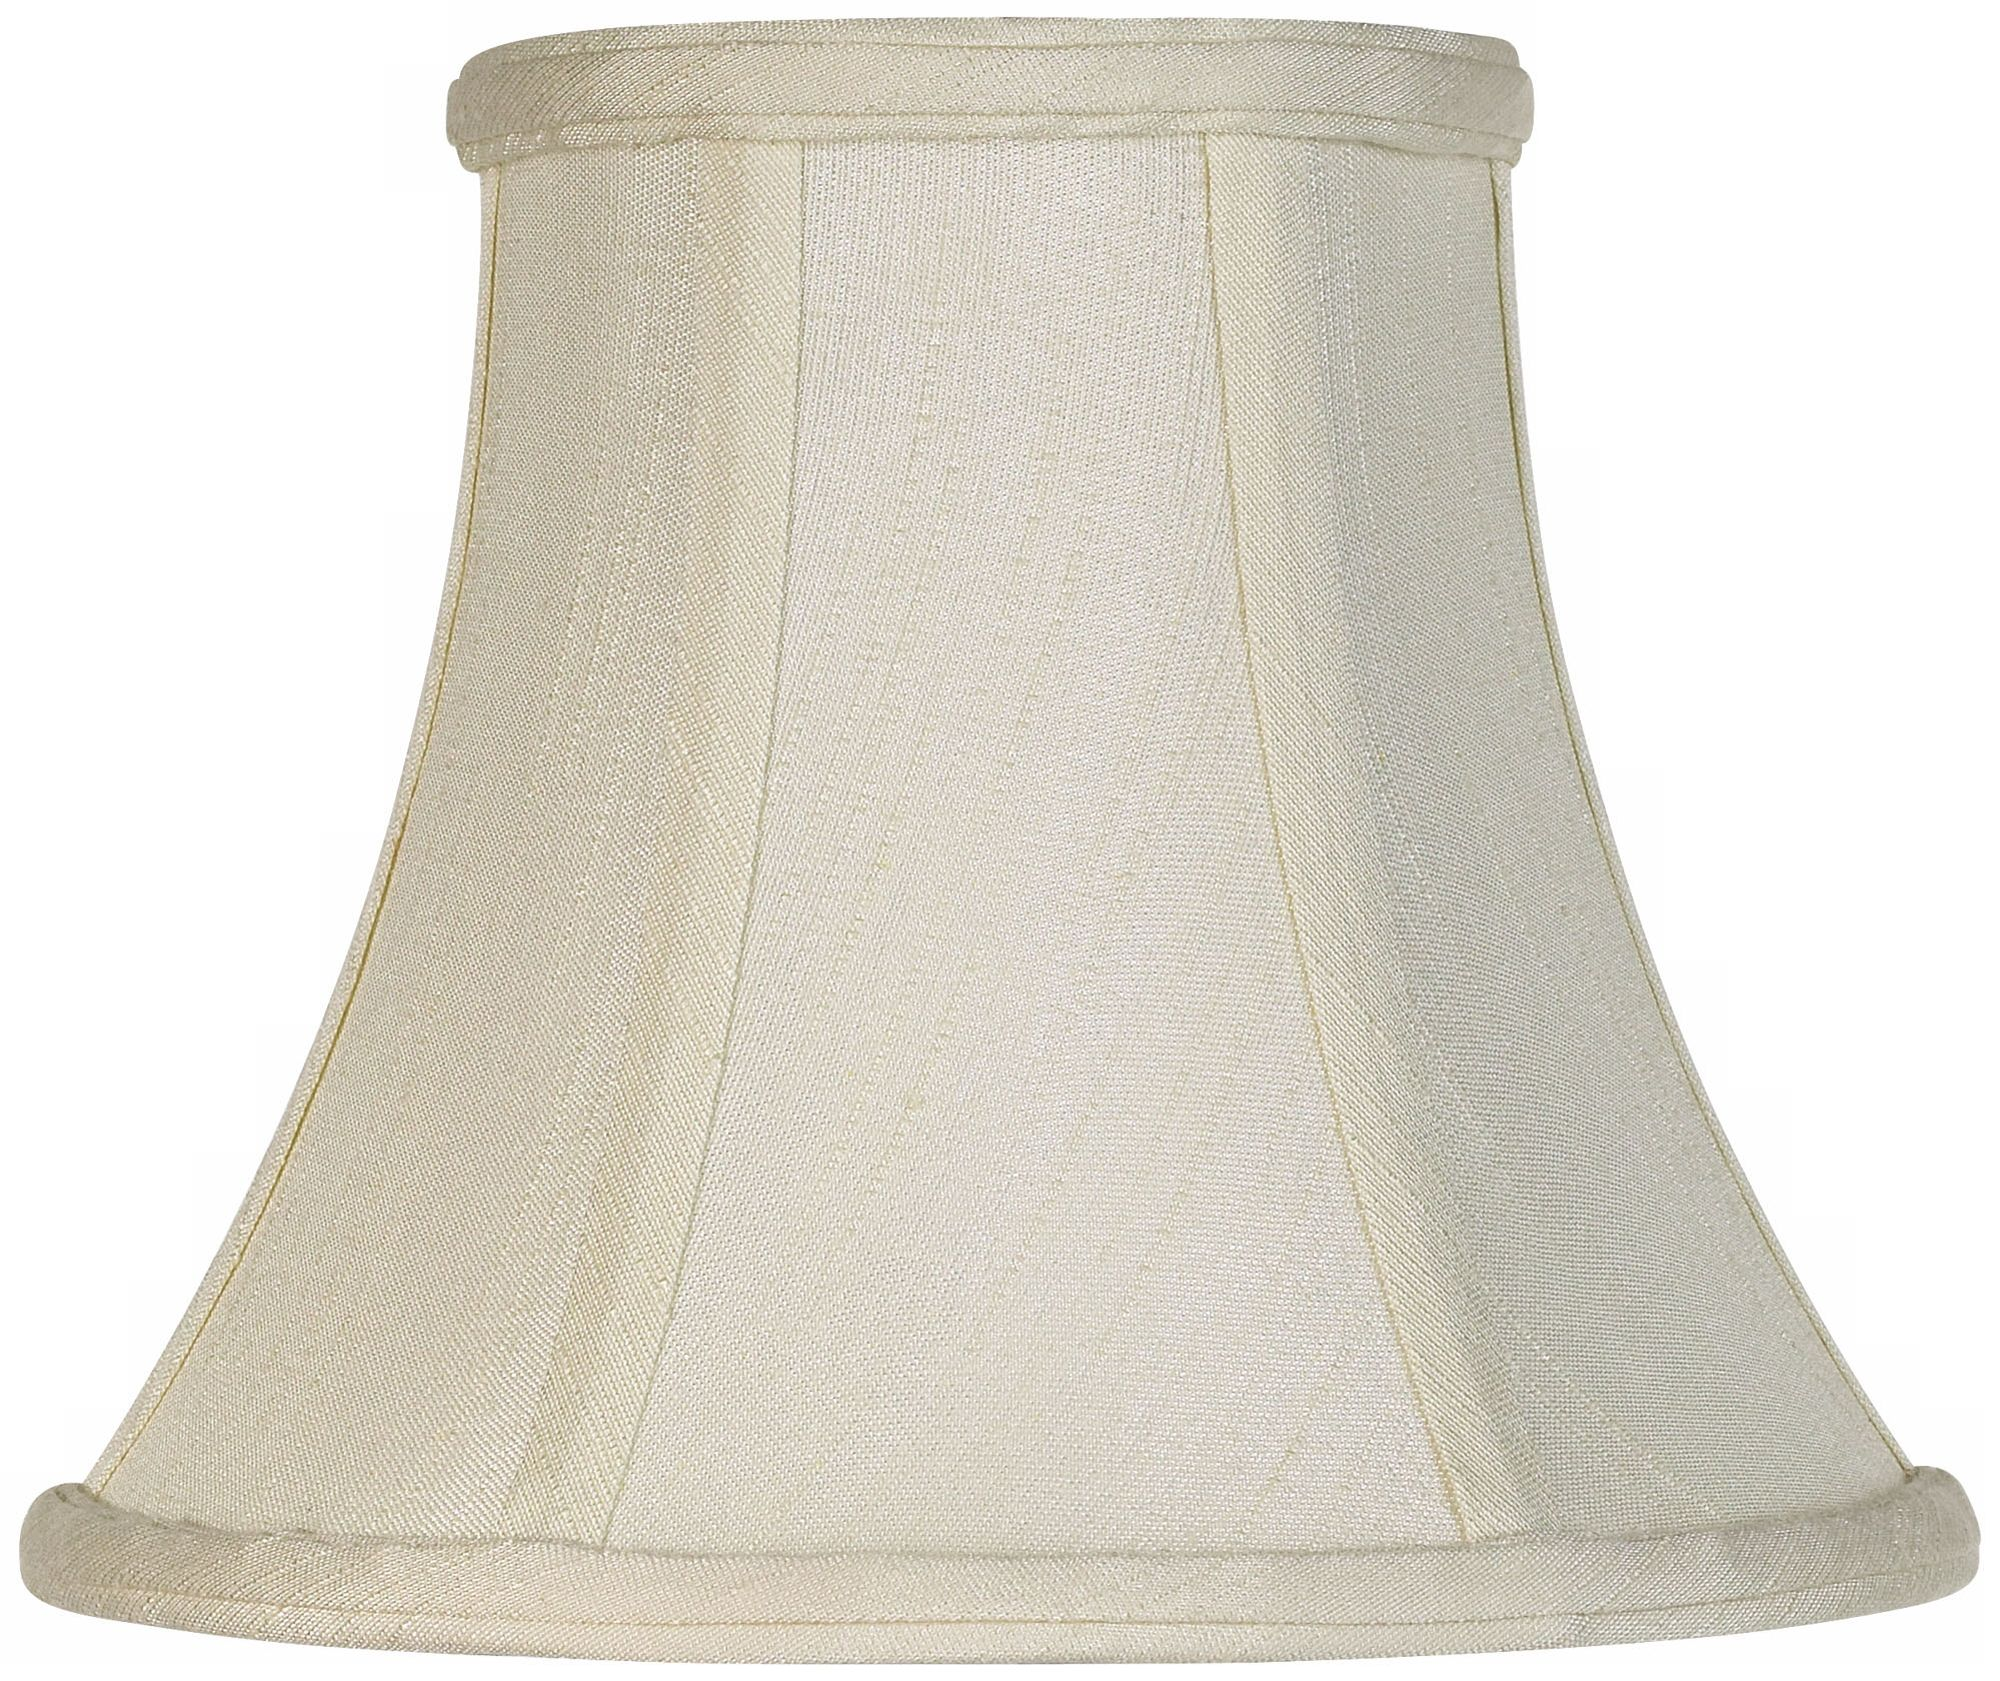 Superb Imperial Collection™ Creme Lamp Shade 4.5x8.5x7 (Clip On)